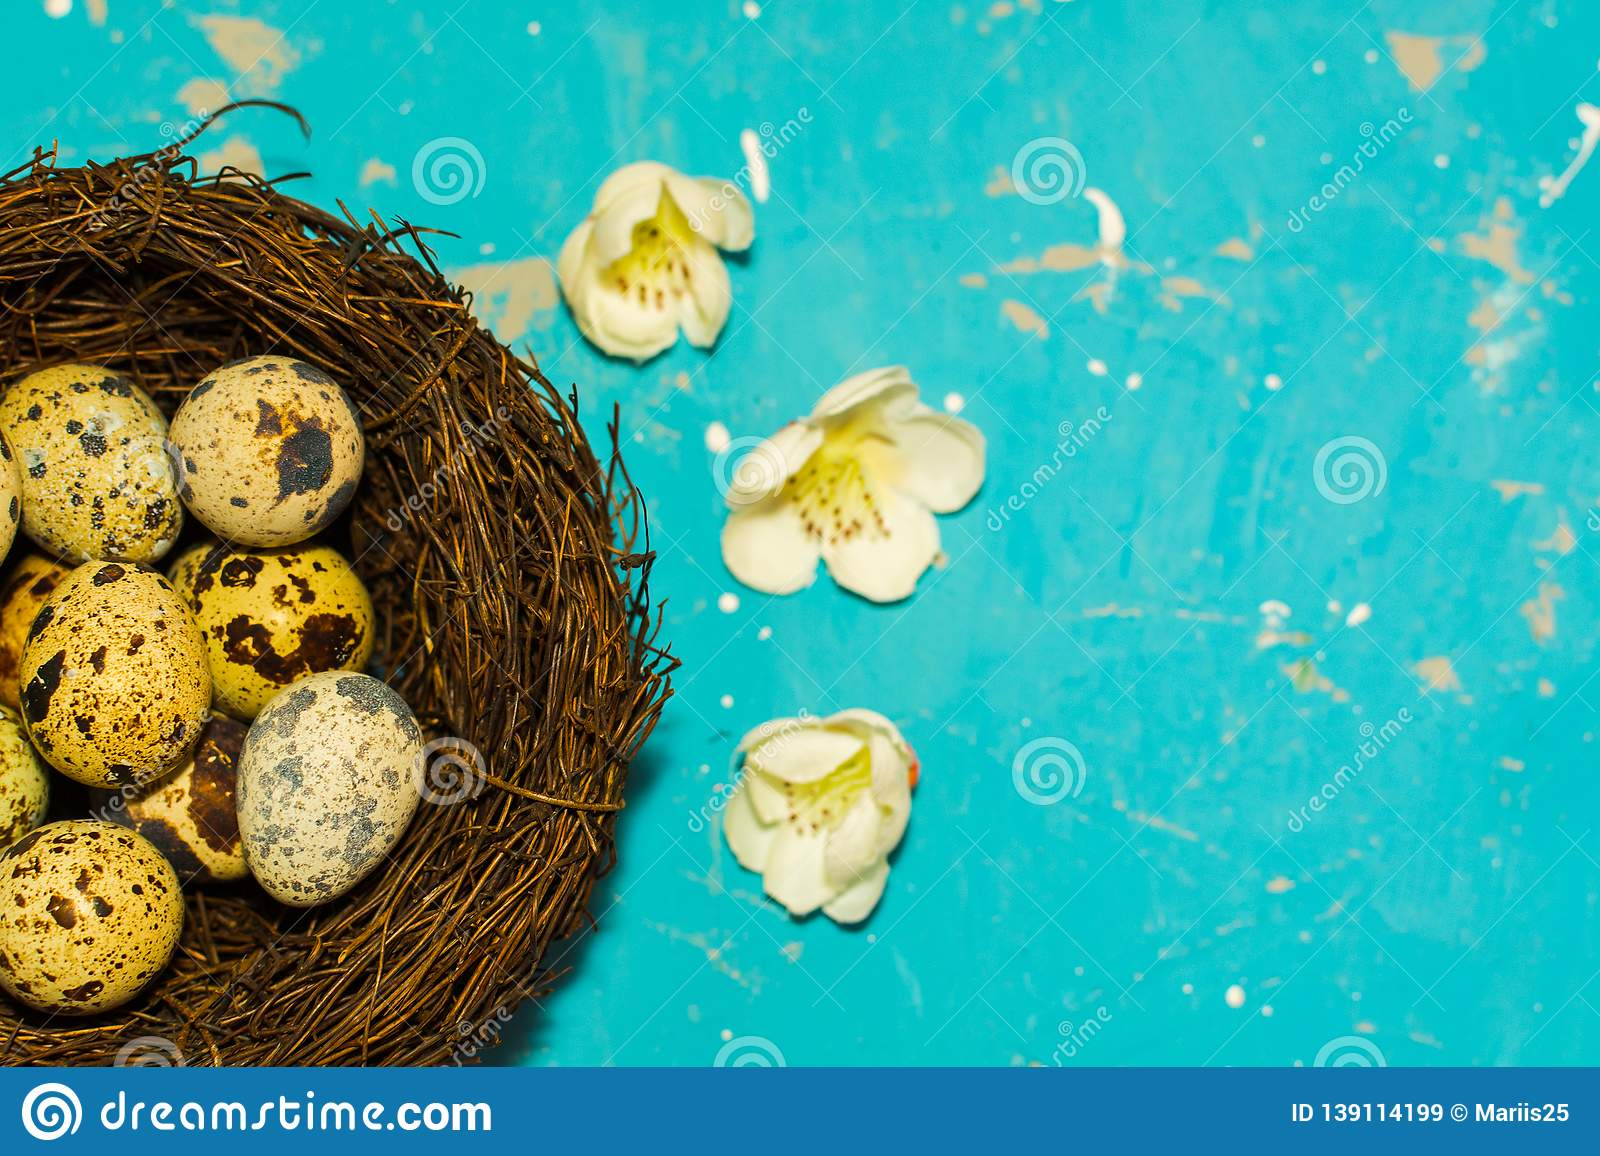 Quail eggs in the nest on blue background. happy Easter